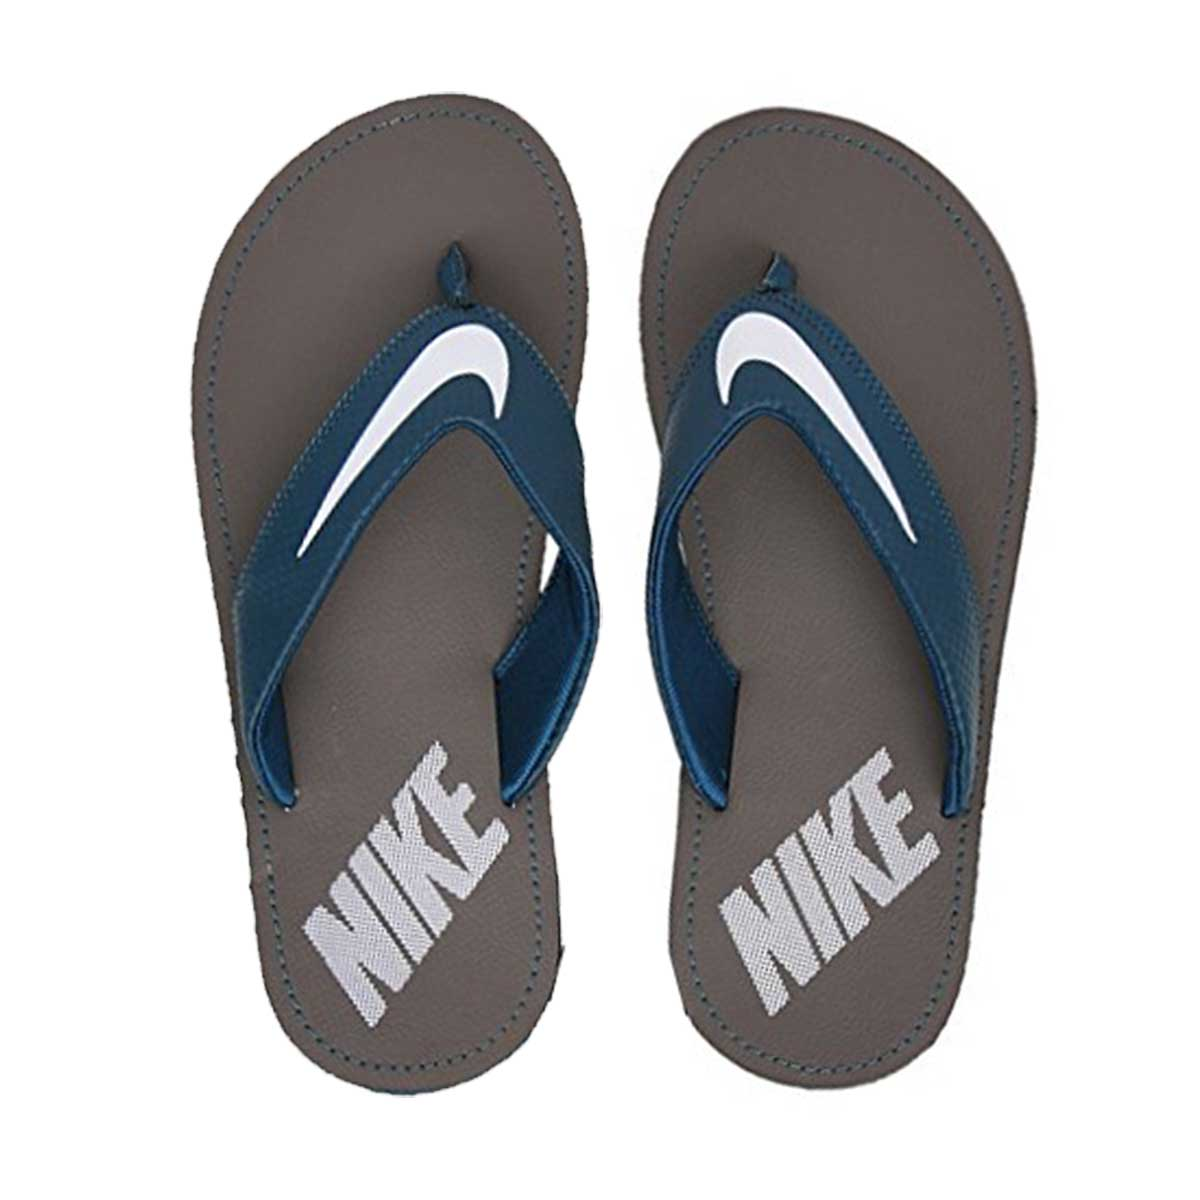 brand new f38b2 02697 Nike Chroma Thong 4 Slippers (Blue / White)